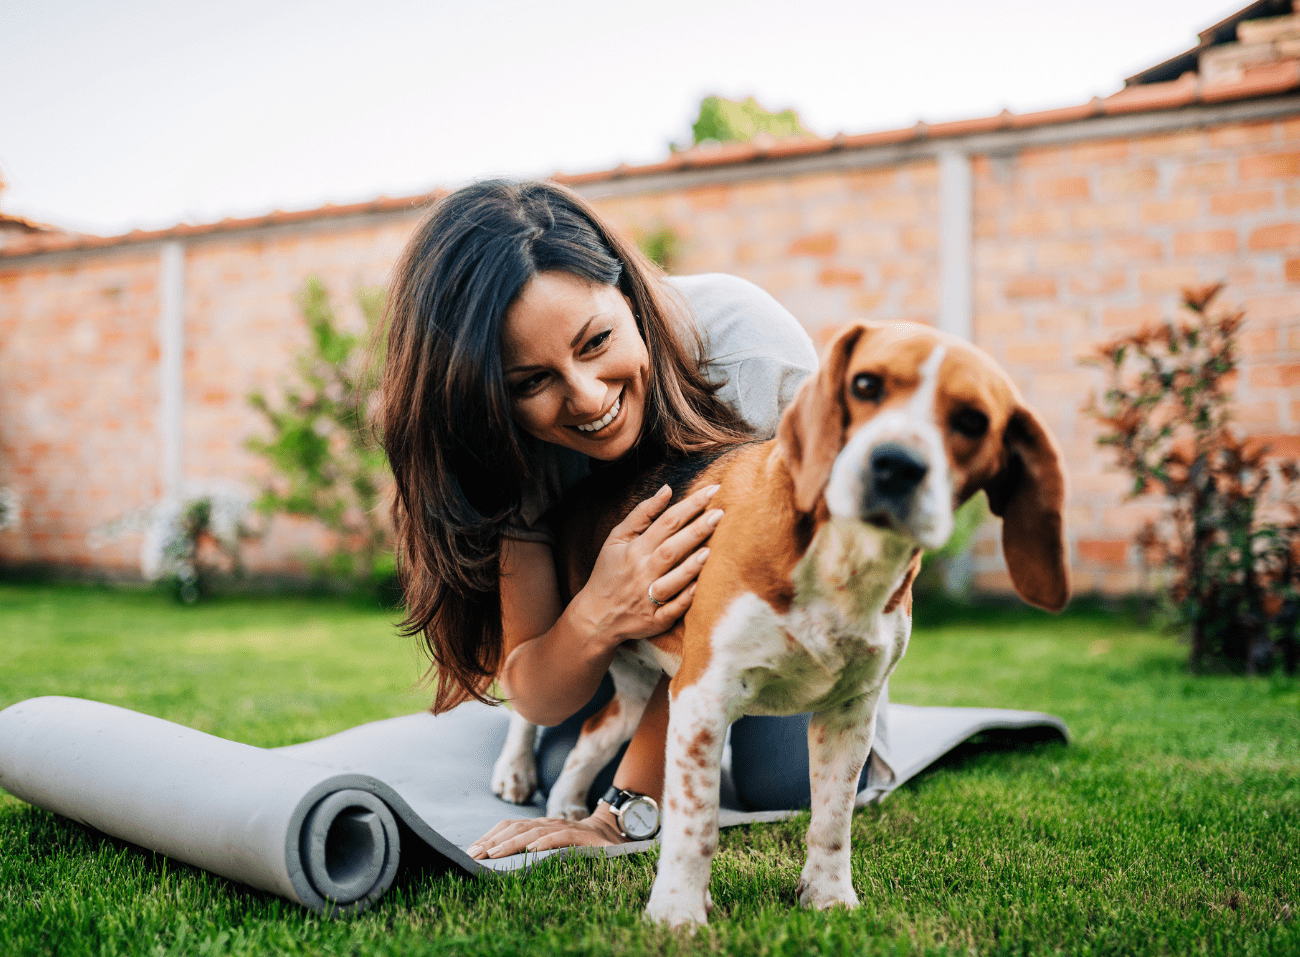 woman on a yoga mat in the yard playing with her dog